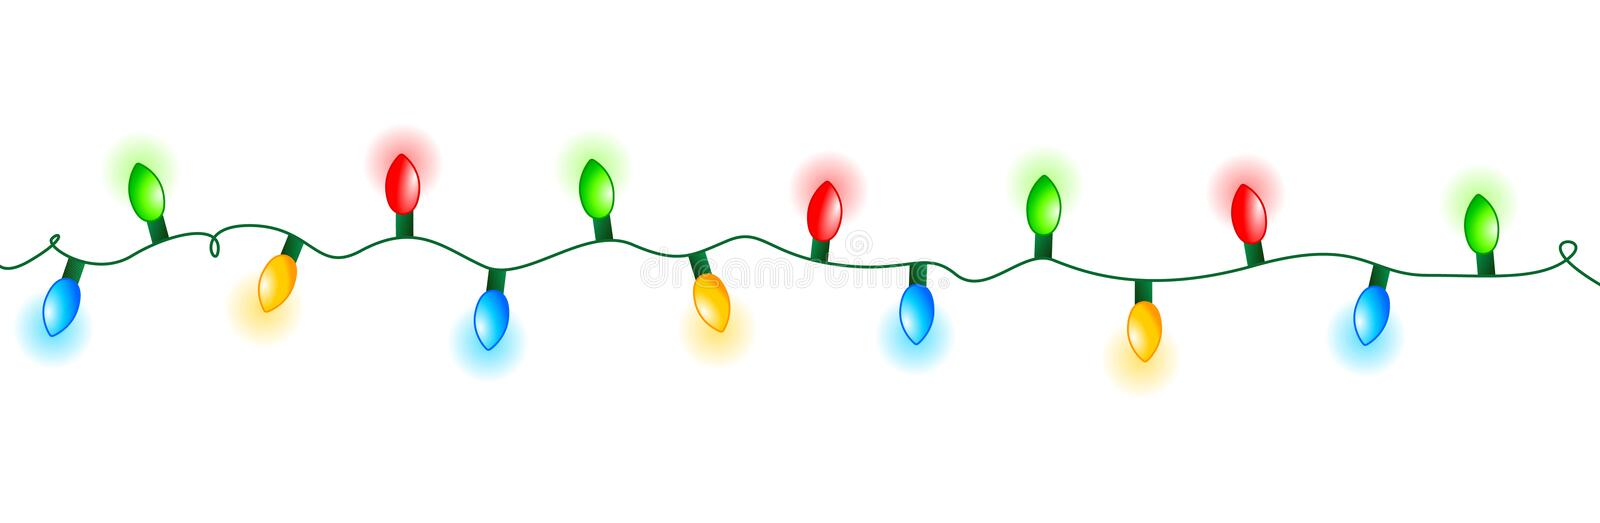 Lights divider. Colorful glowing christmas lights divider / frame. Colorful holiday lights illustration